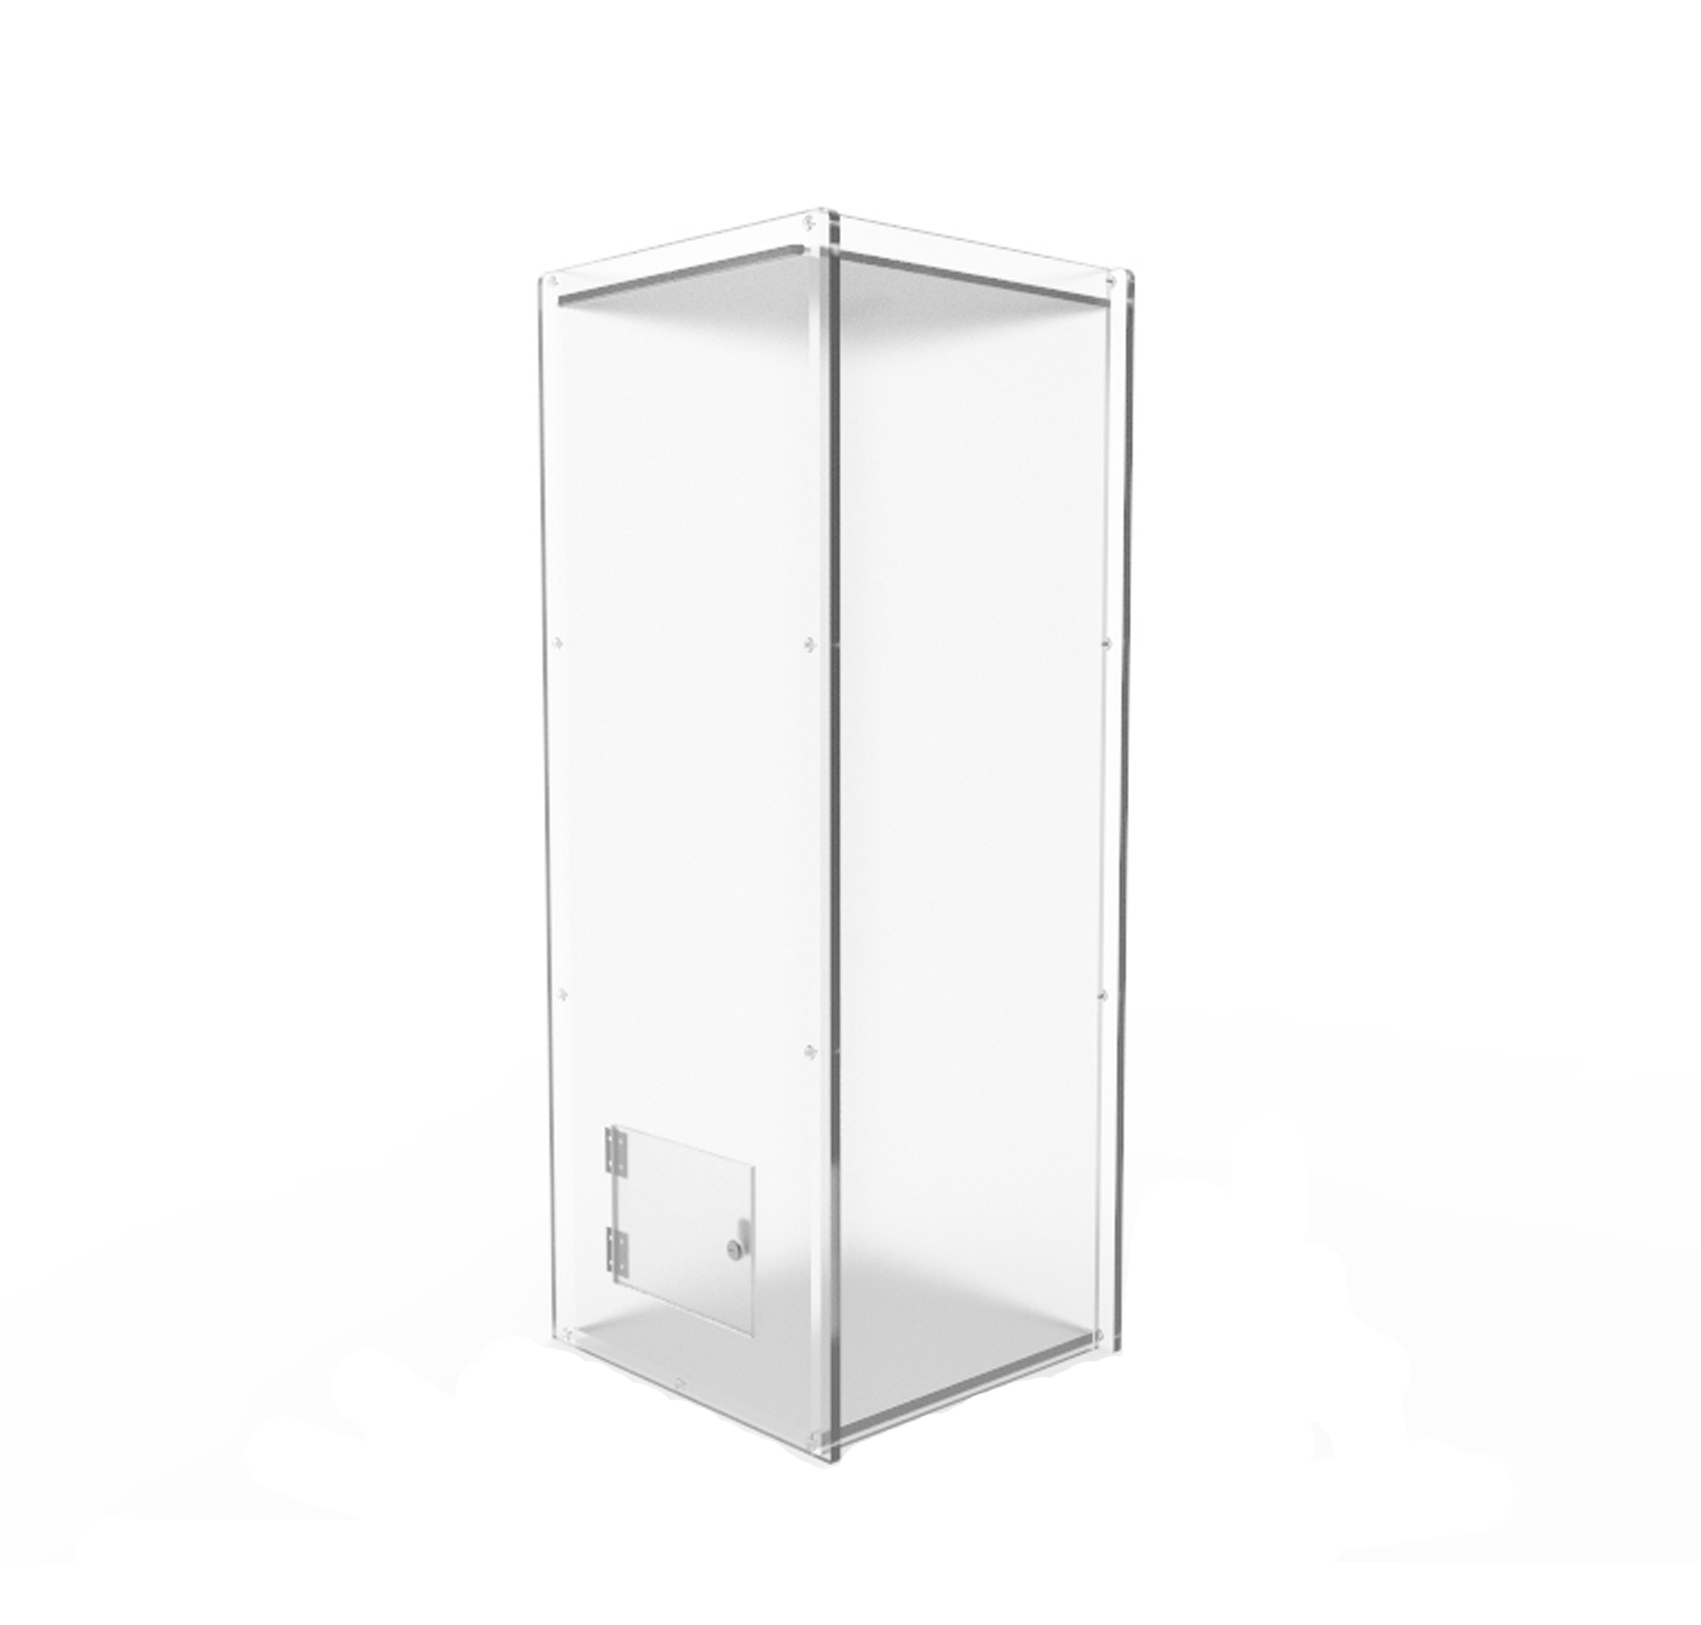 Acrylic Offering Boxes : Clear acrylic plexiglass charity donation box poll